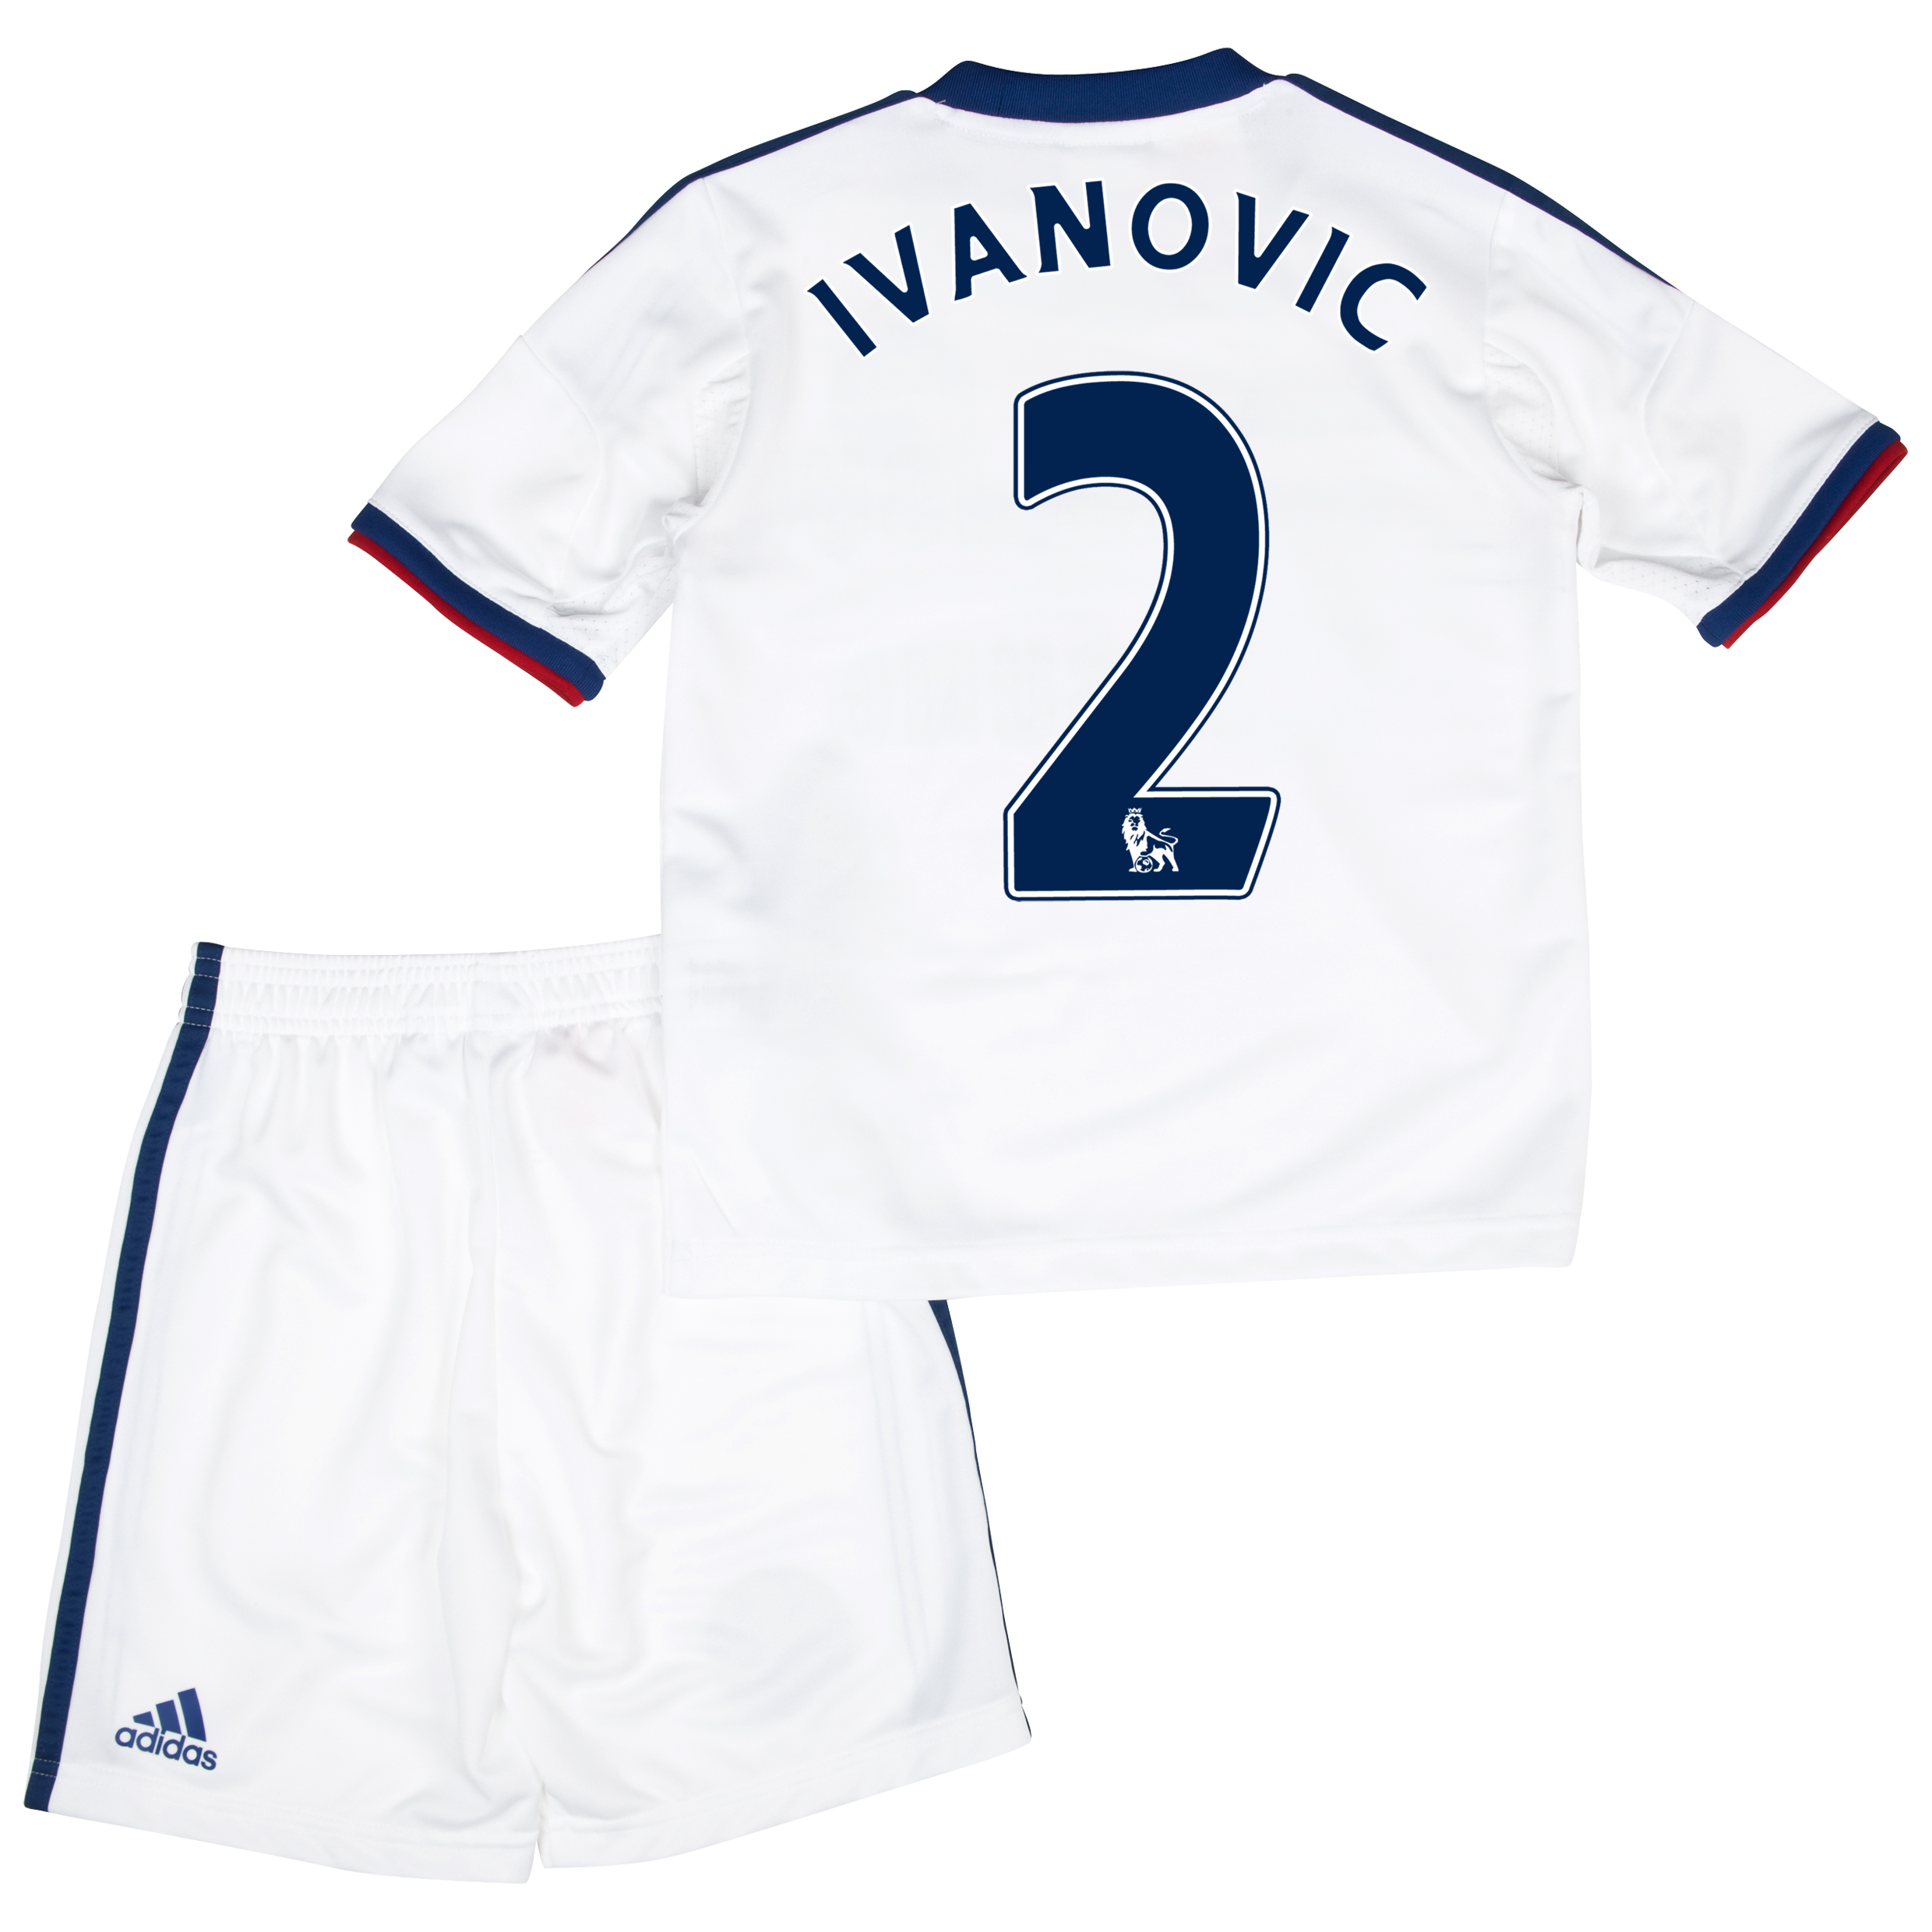 Chelsea Away Mini Kit 2013/14 with Ivanovic 2 printing